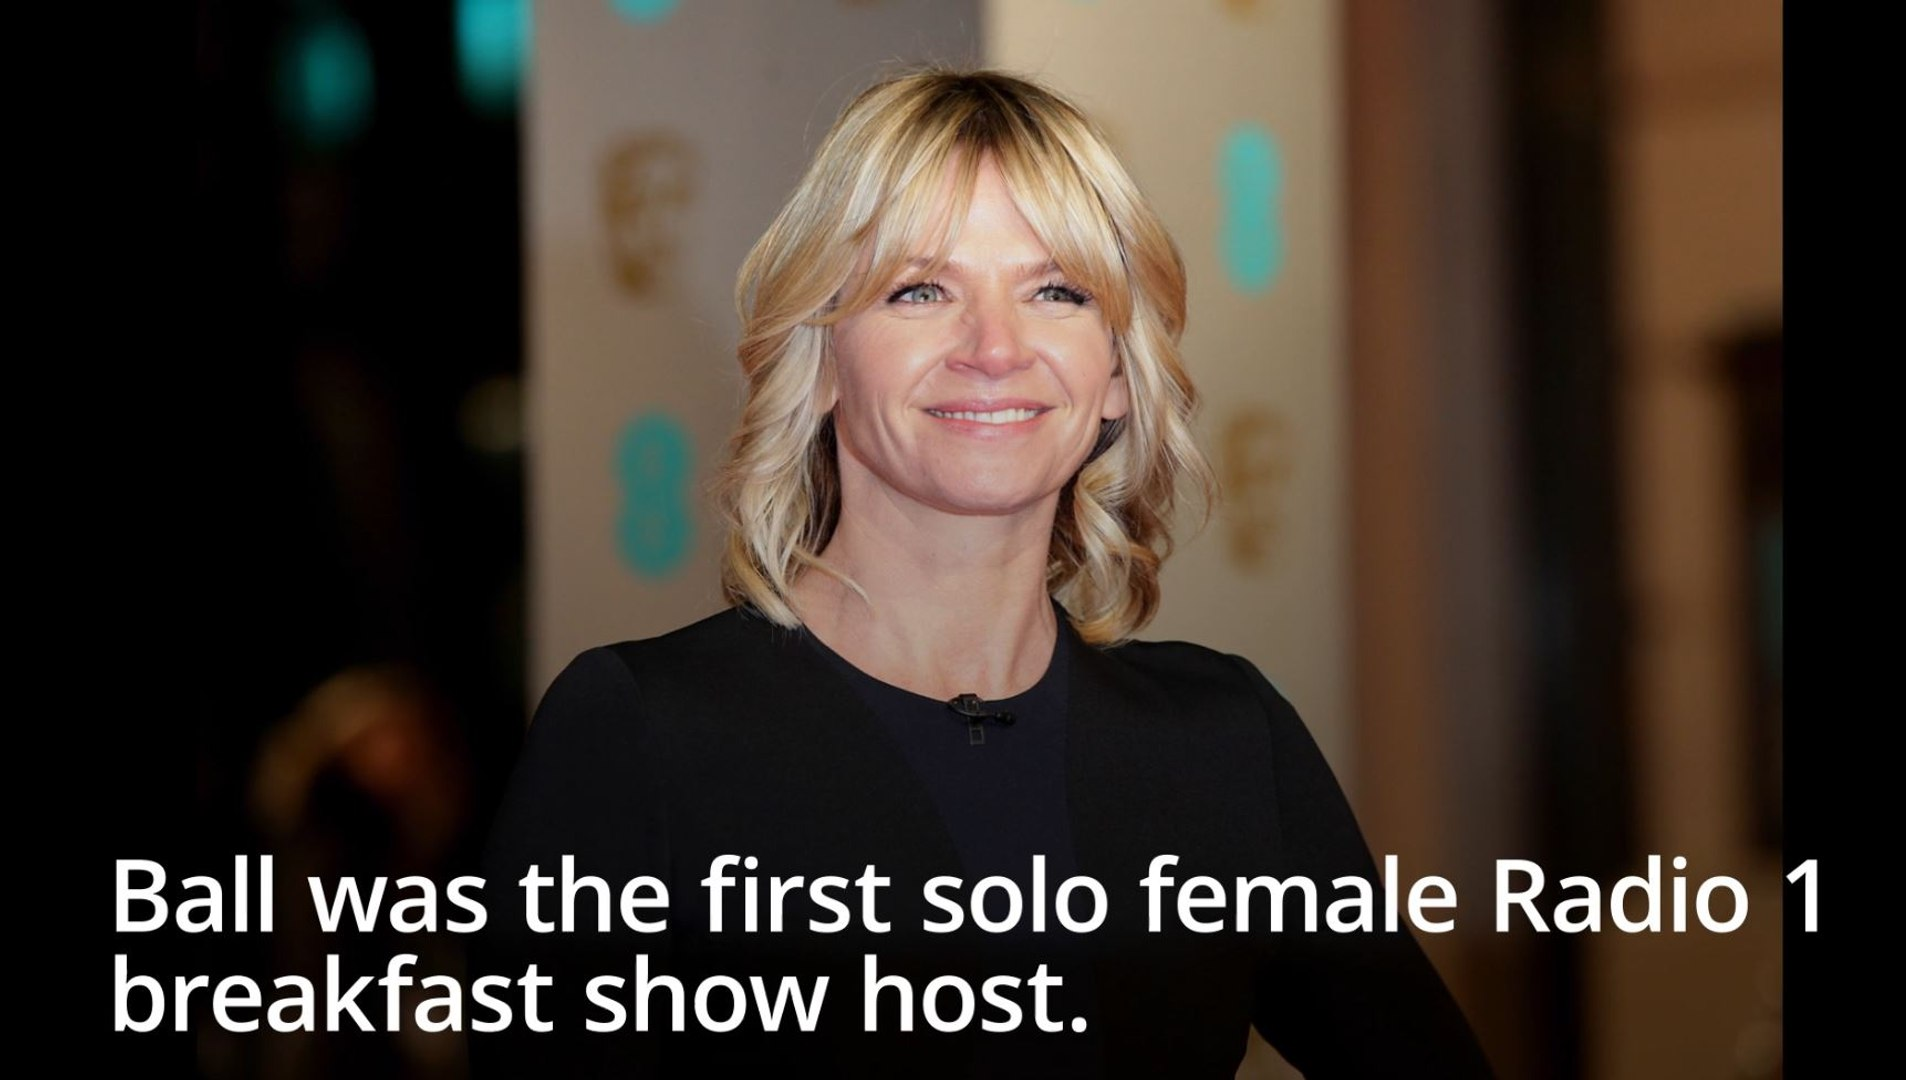 Zoe Ball takes over BBC Radio 2 Breakfast Show